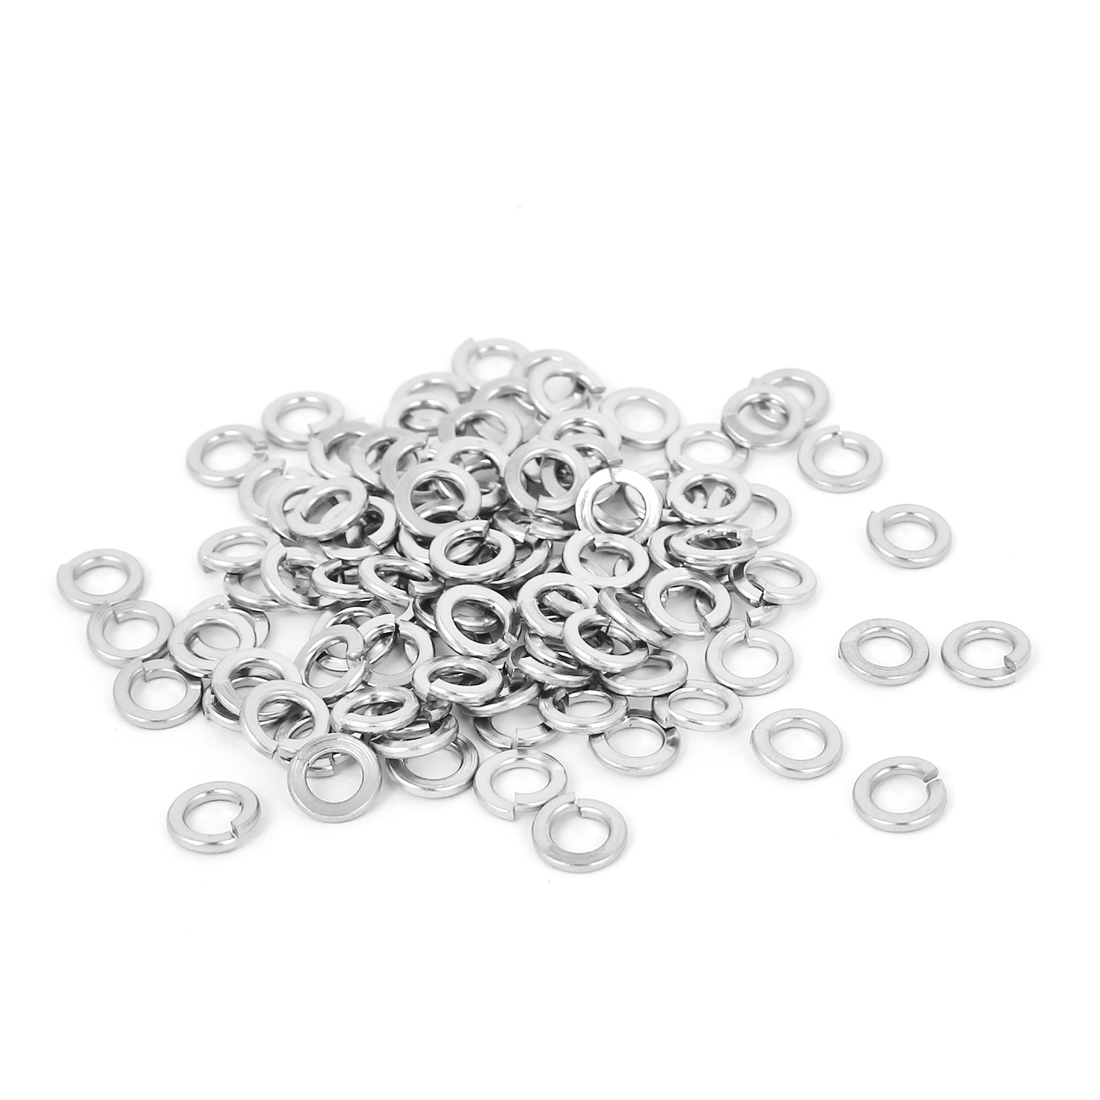 100pcs 304 Stainless Steel Split Lock Spring Washers #6 Screw Spacer Pad